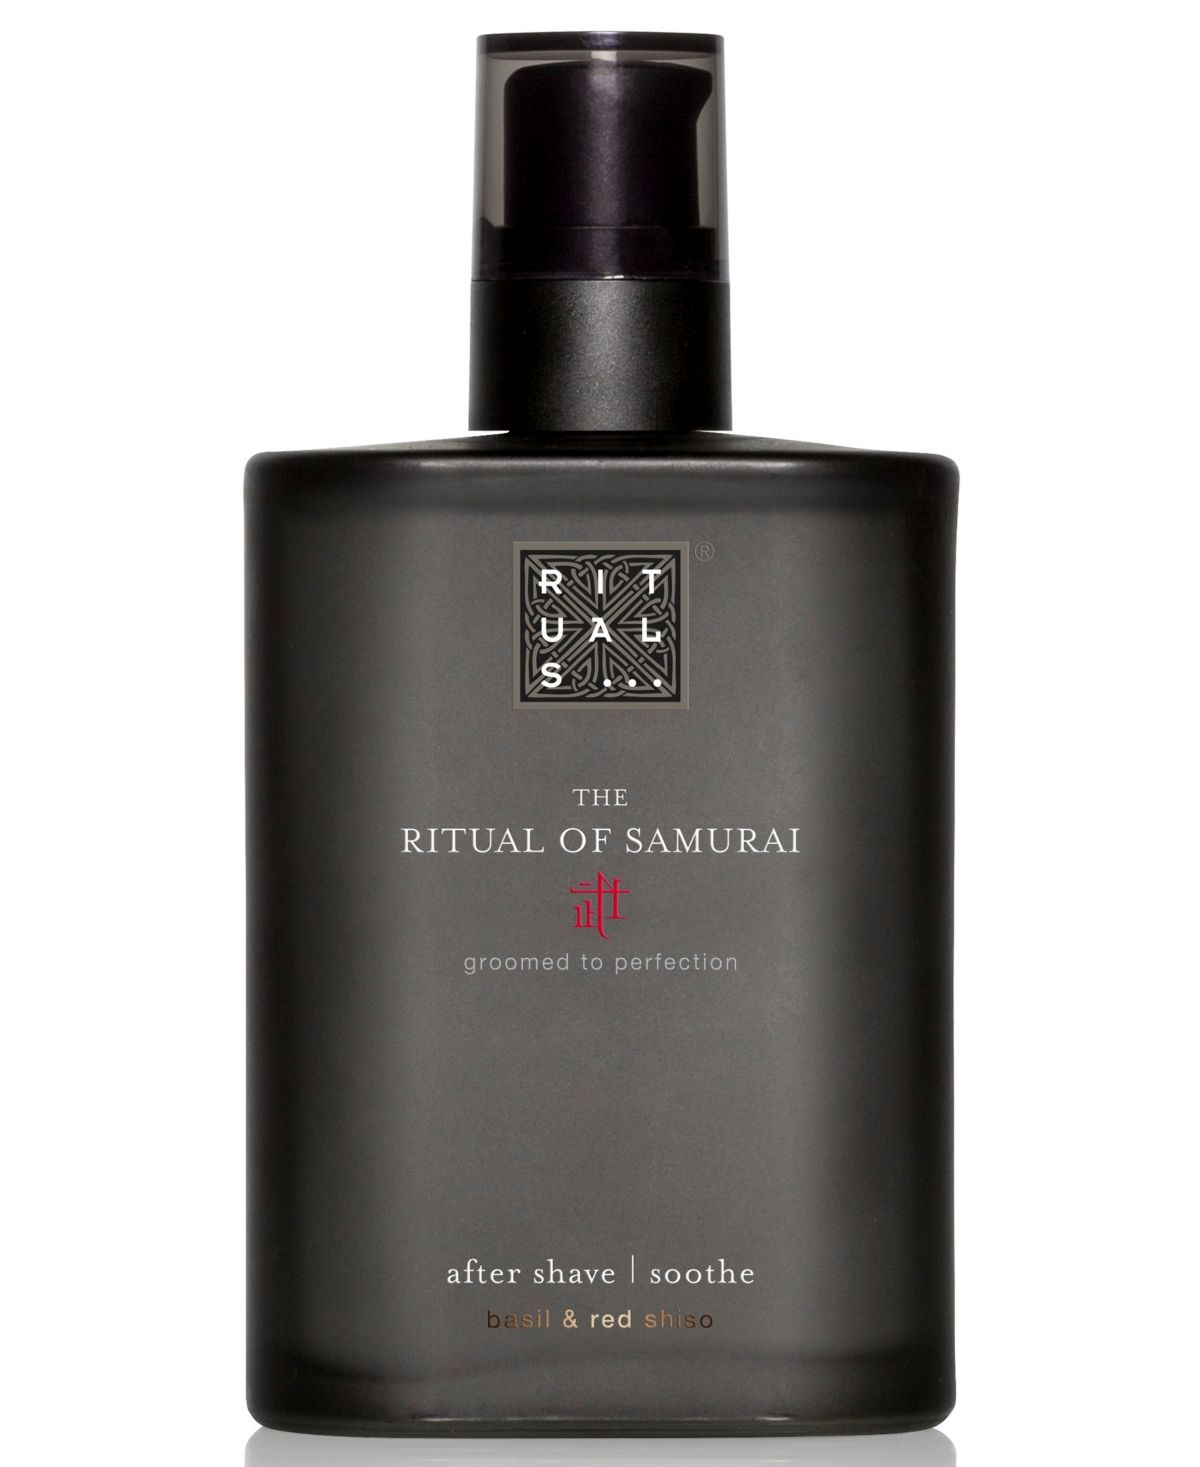 Rituals Men S The Ritual Of Samurai Soothing After Shave 3 3 Oz Reviews All Perfume Beauty Macy S After Shave Post Shave Balm Perfume